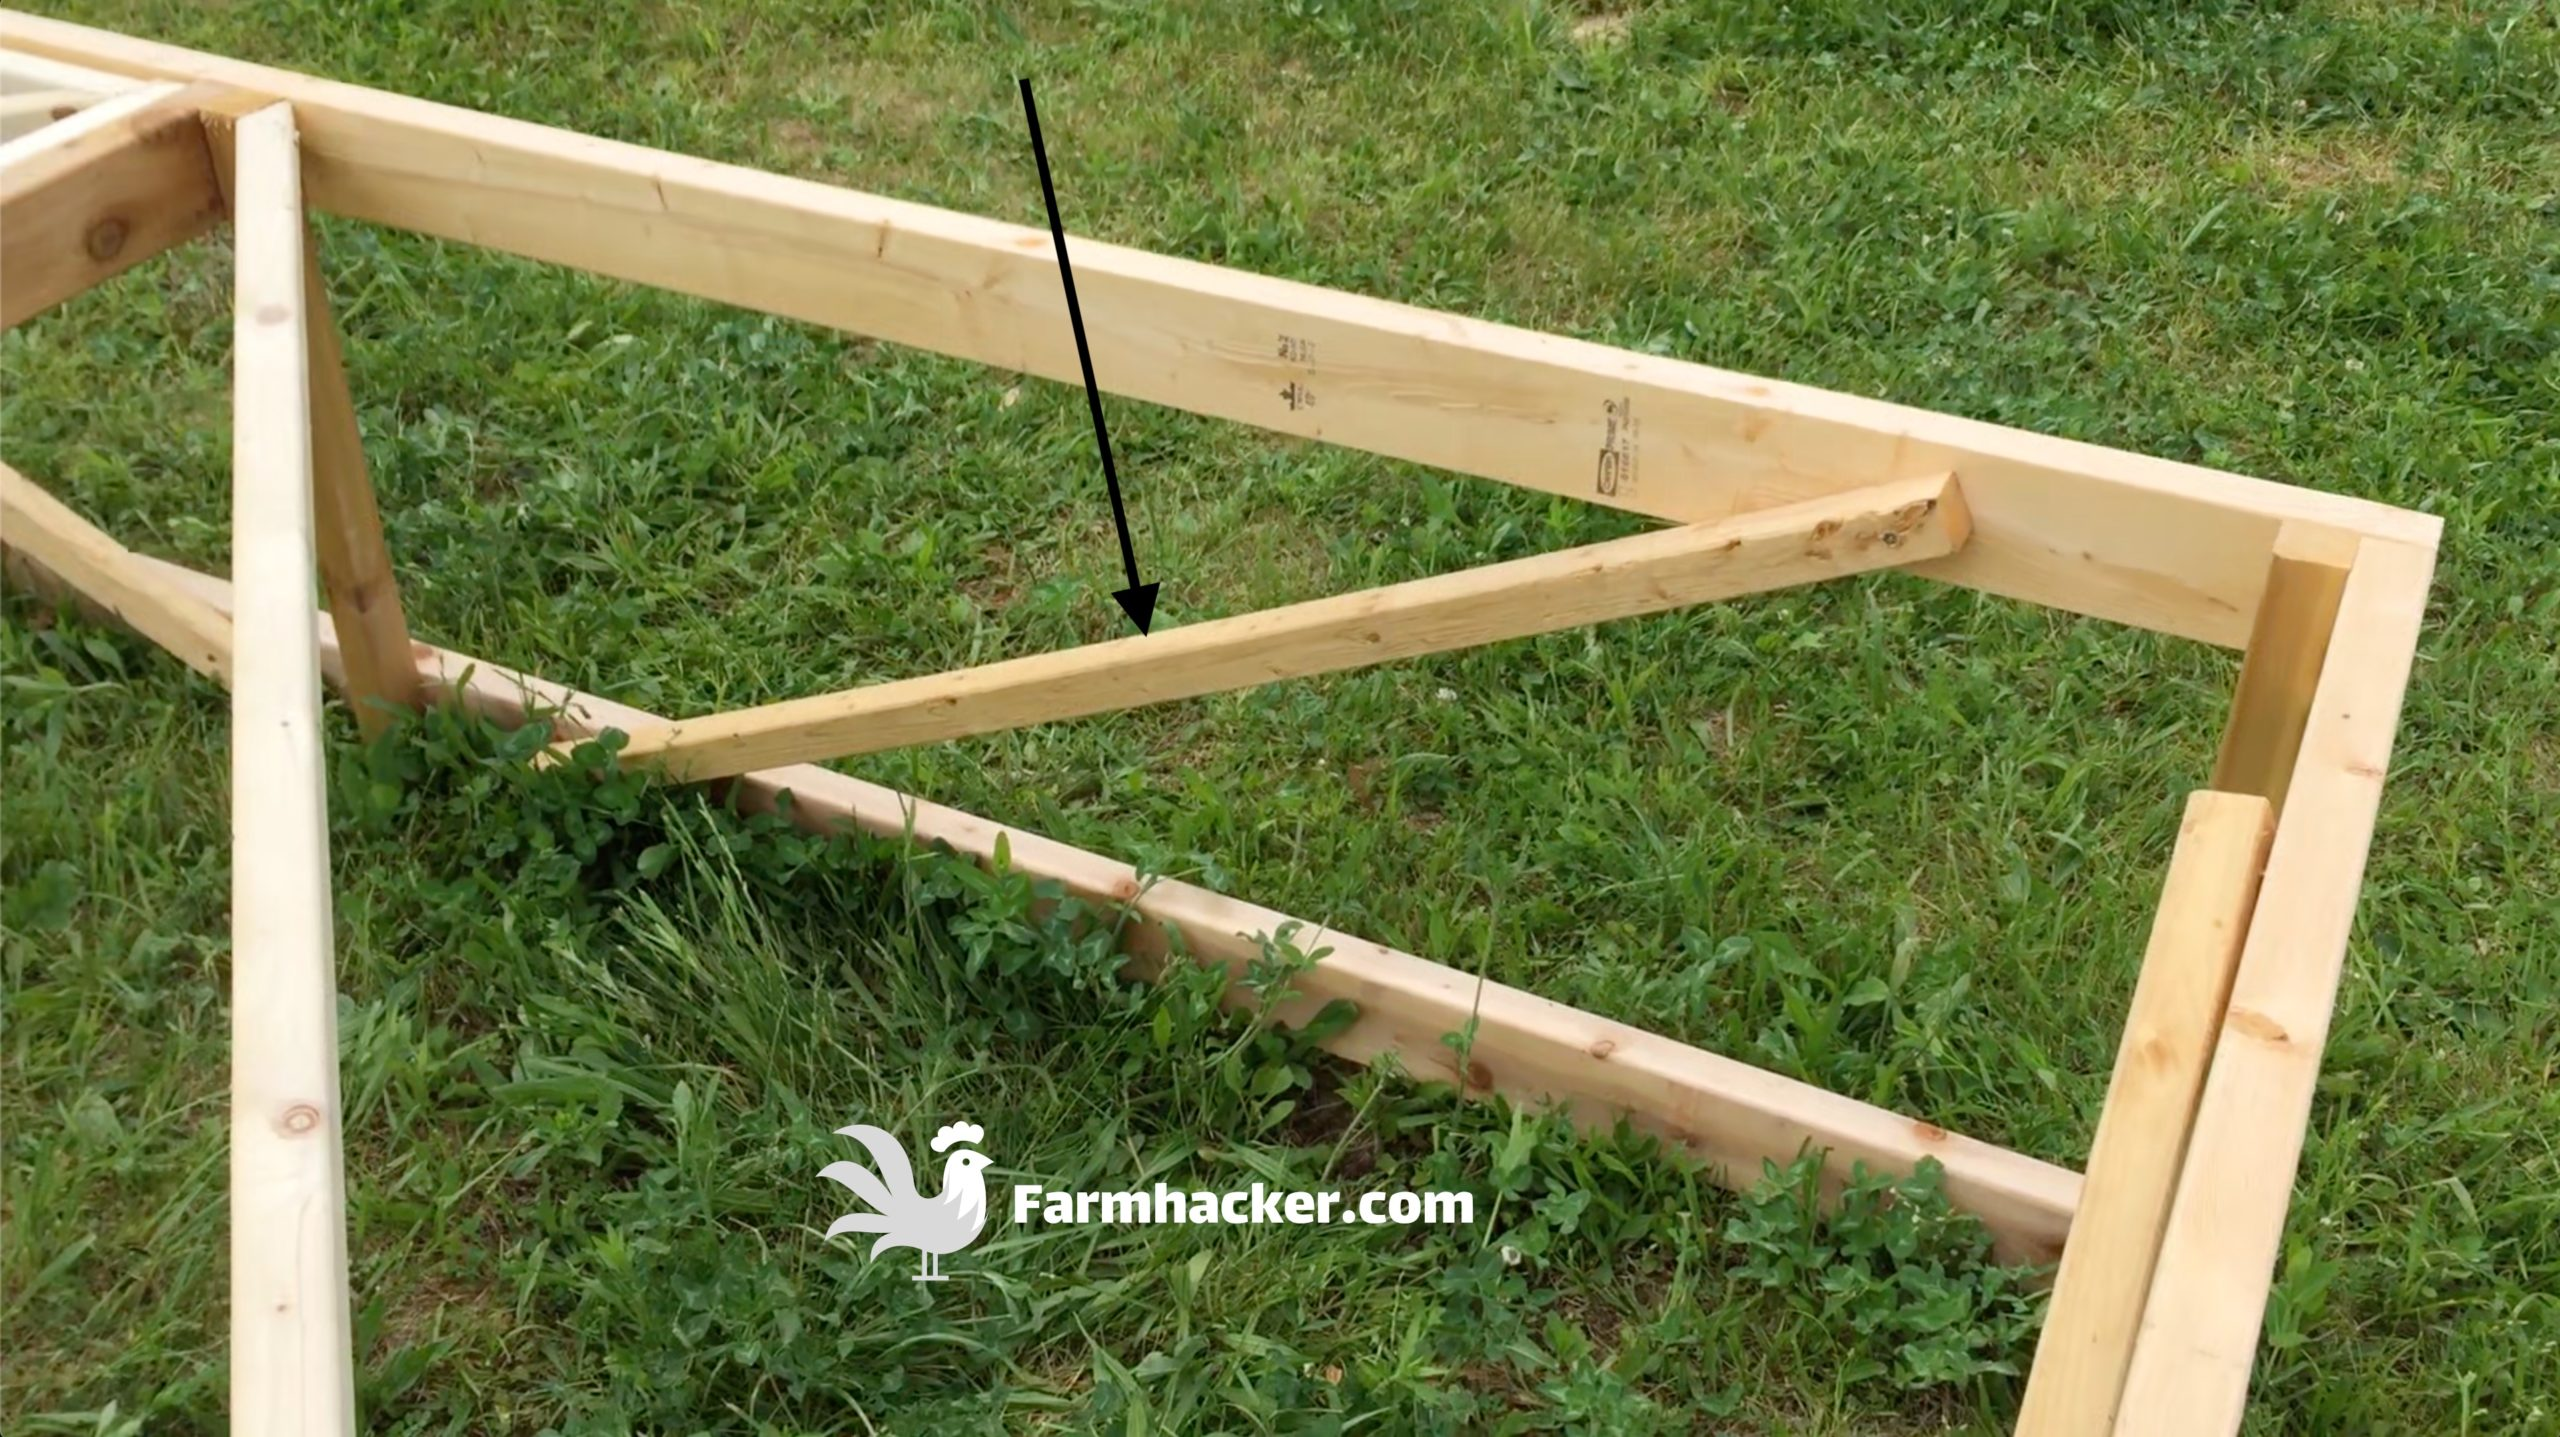 How to Build a Joel Salatin Style Chicken Tractor Step 2.3